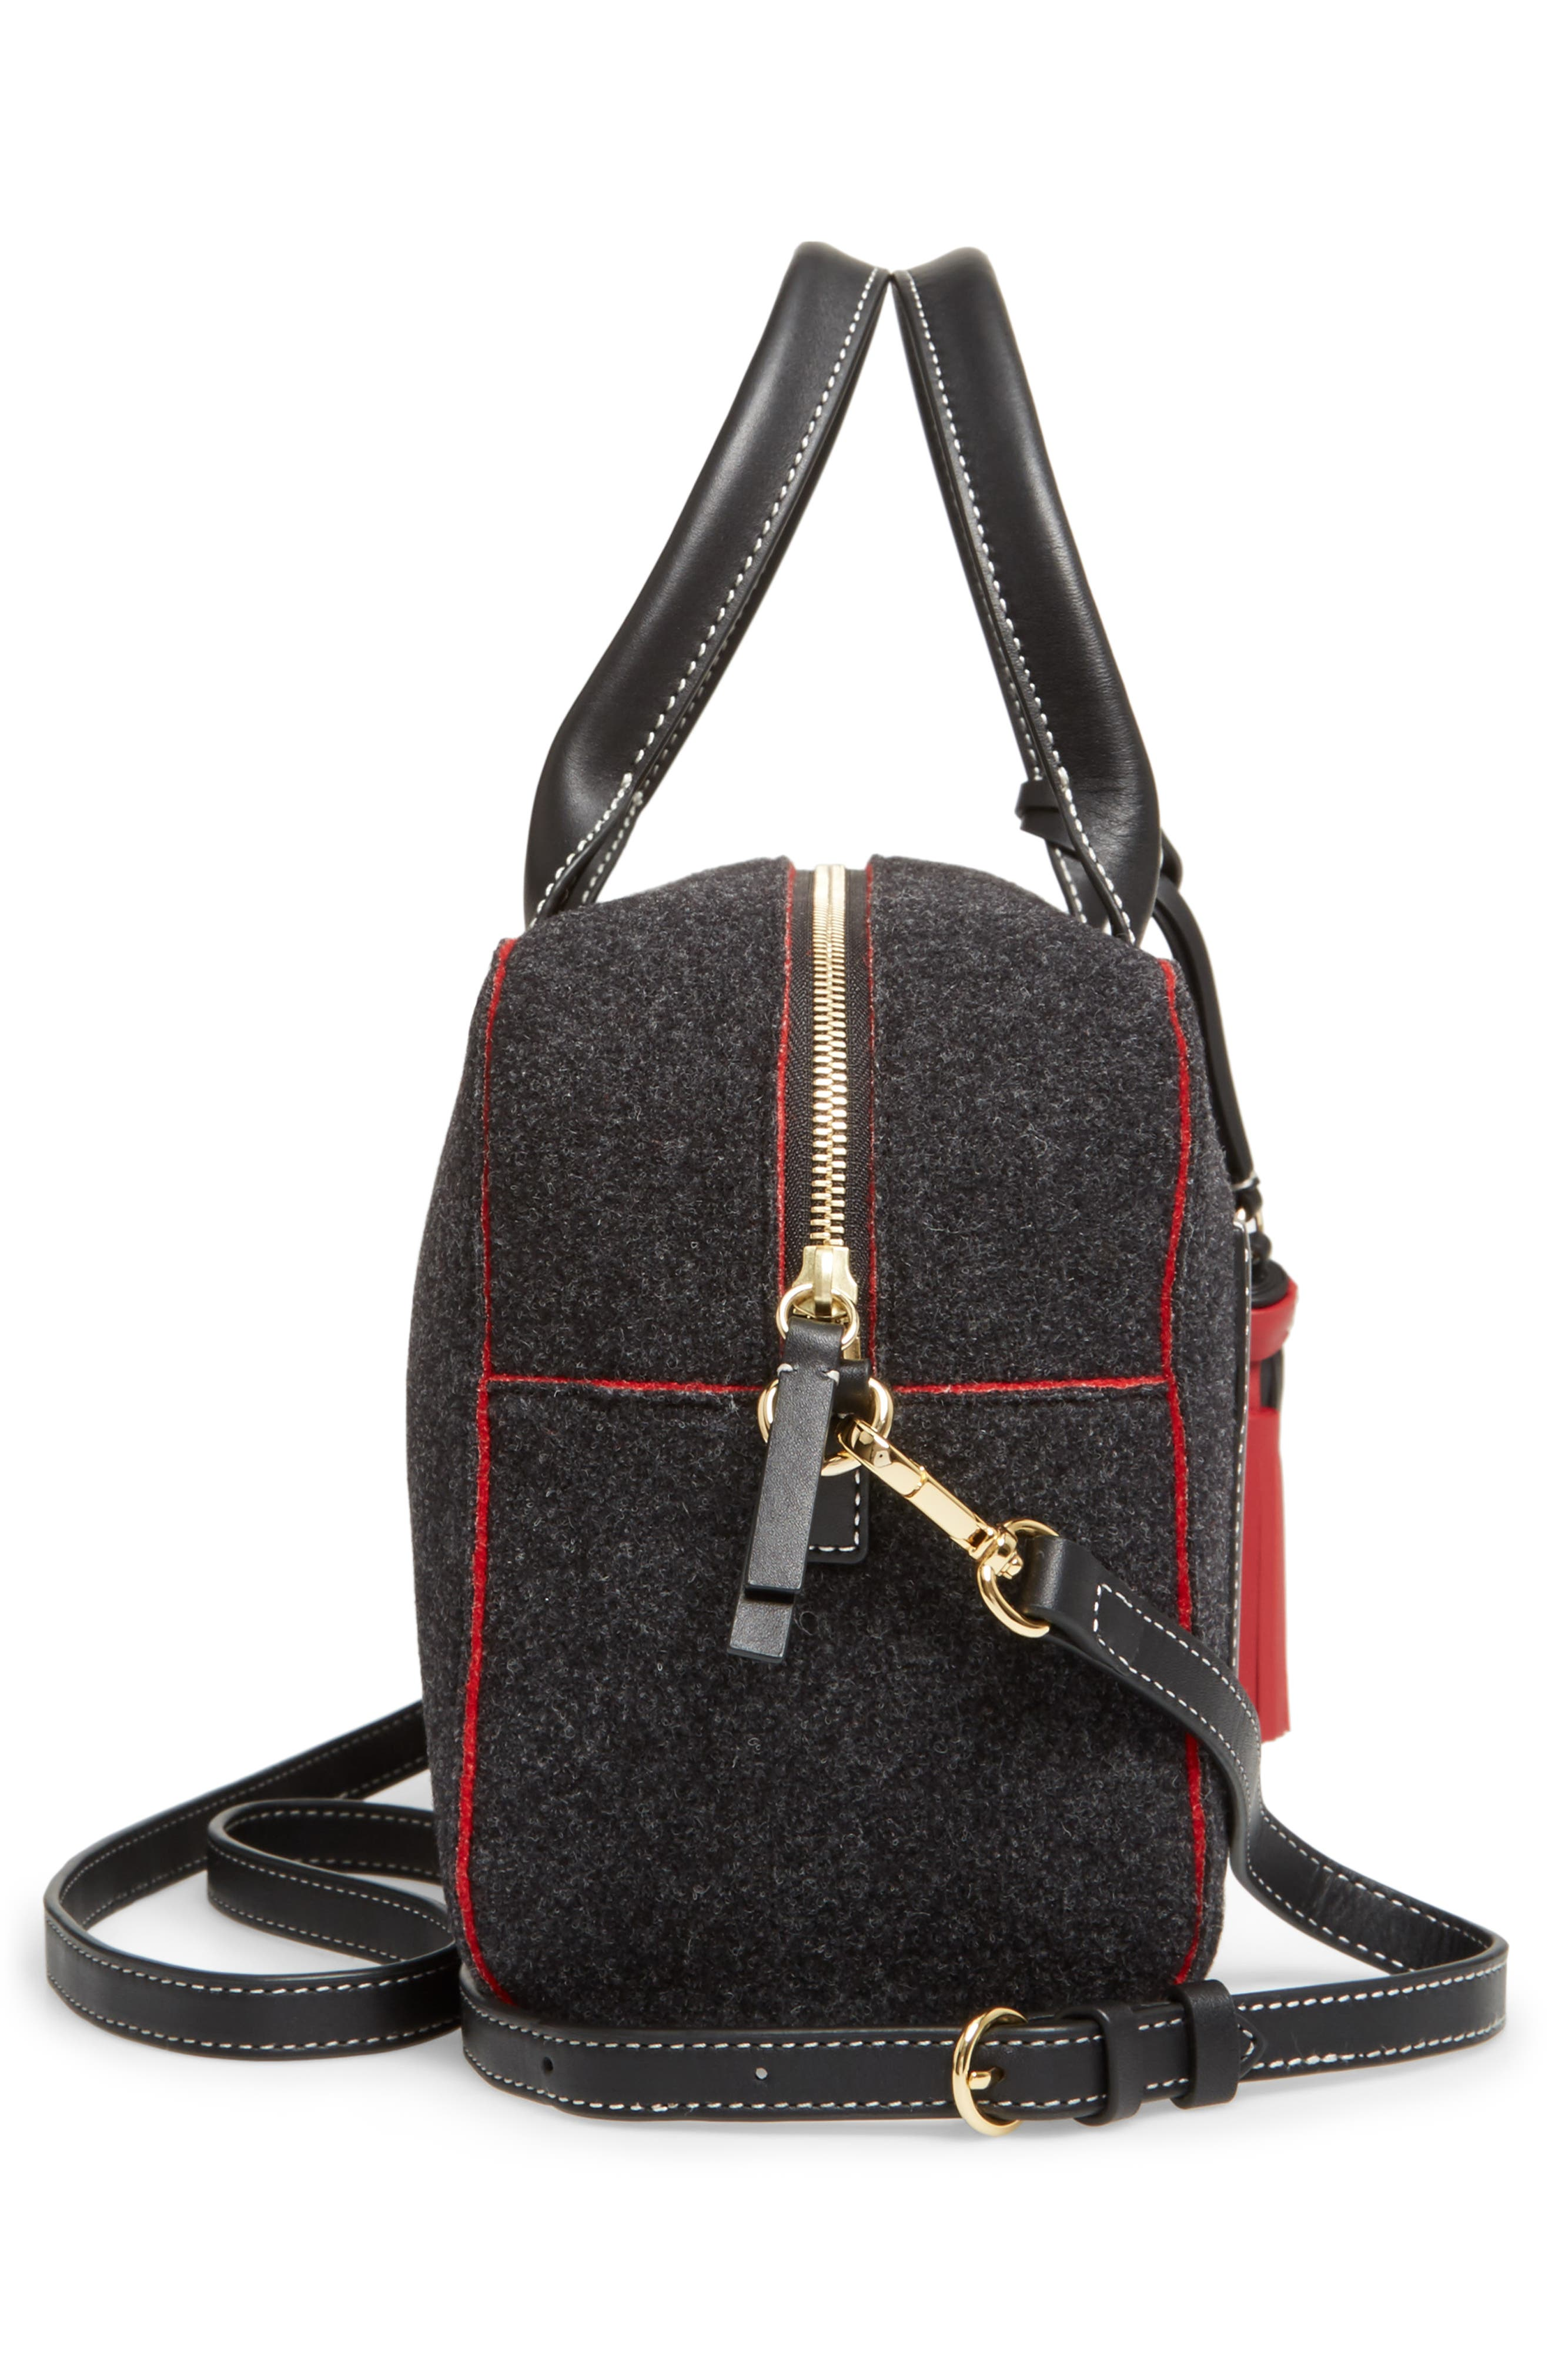 Medium Wool & Leather Satchel,                             Alternate thumbnail 4, color,                             Charcoal